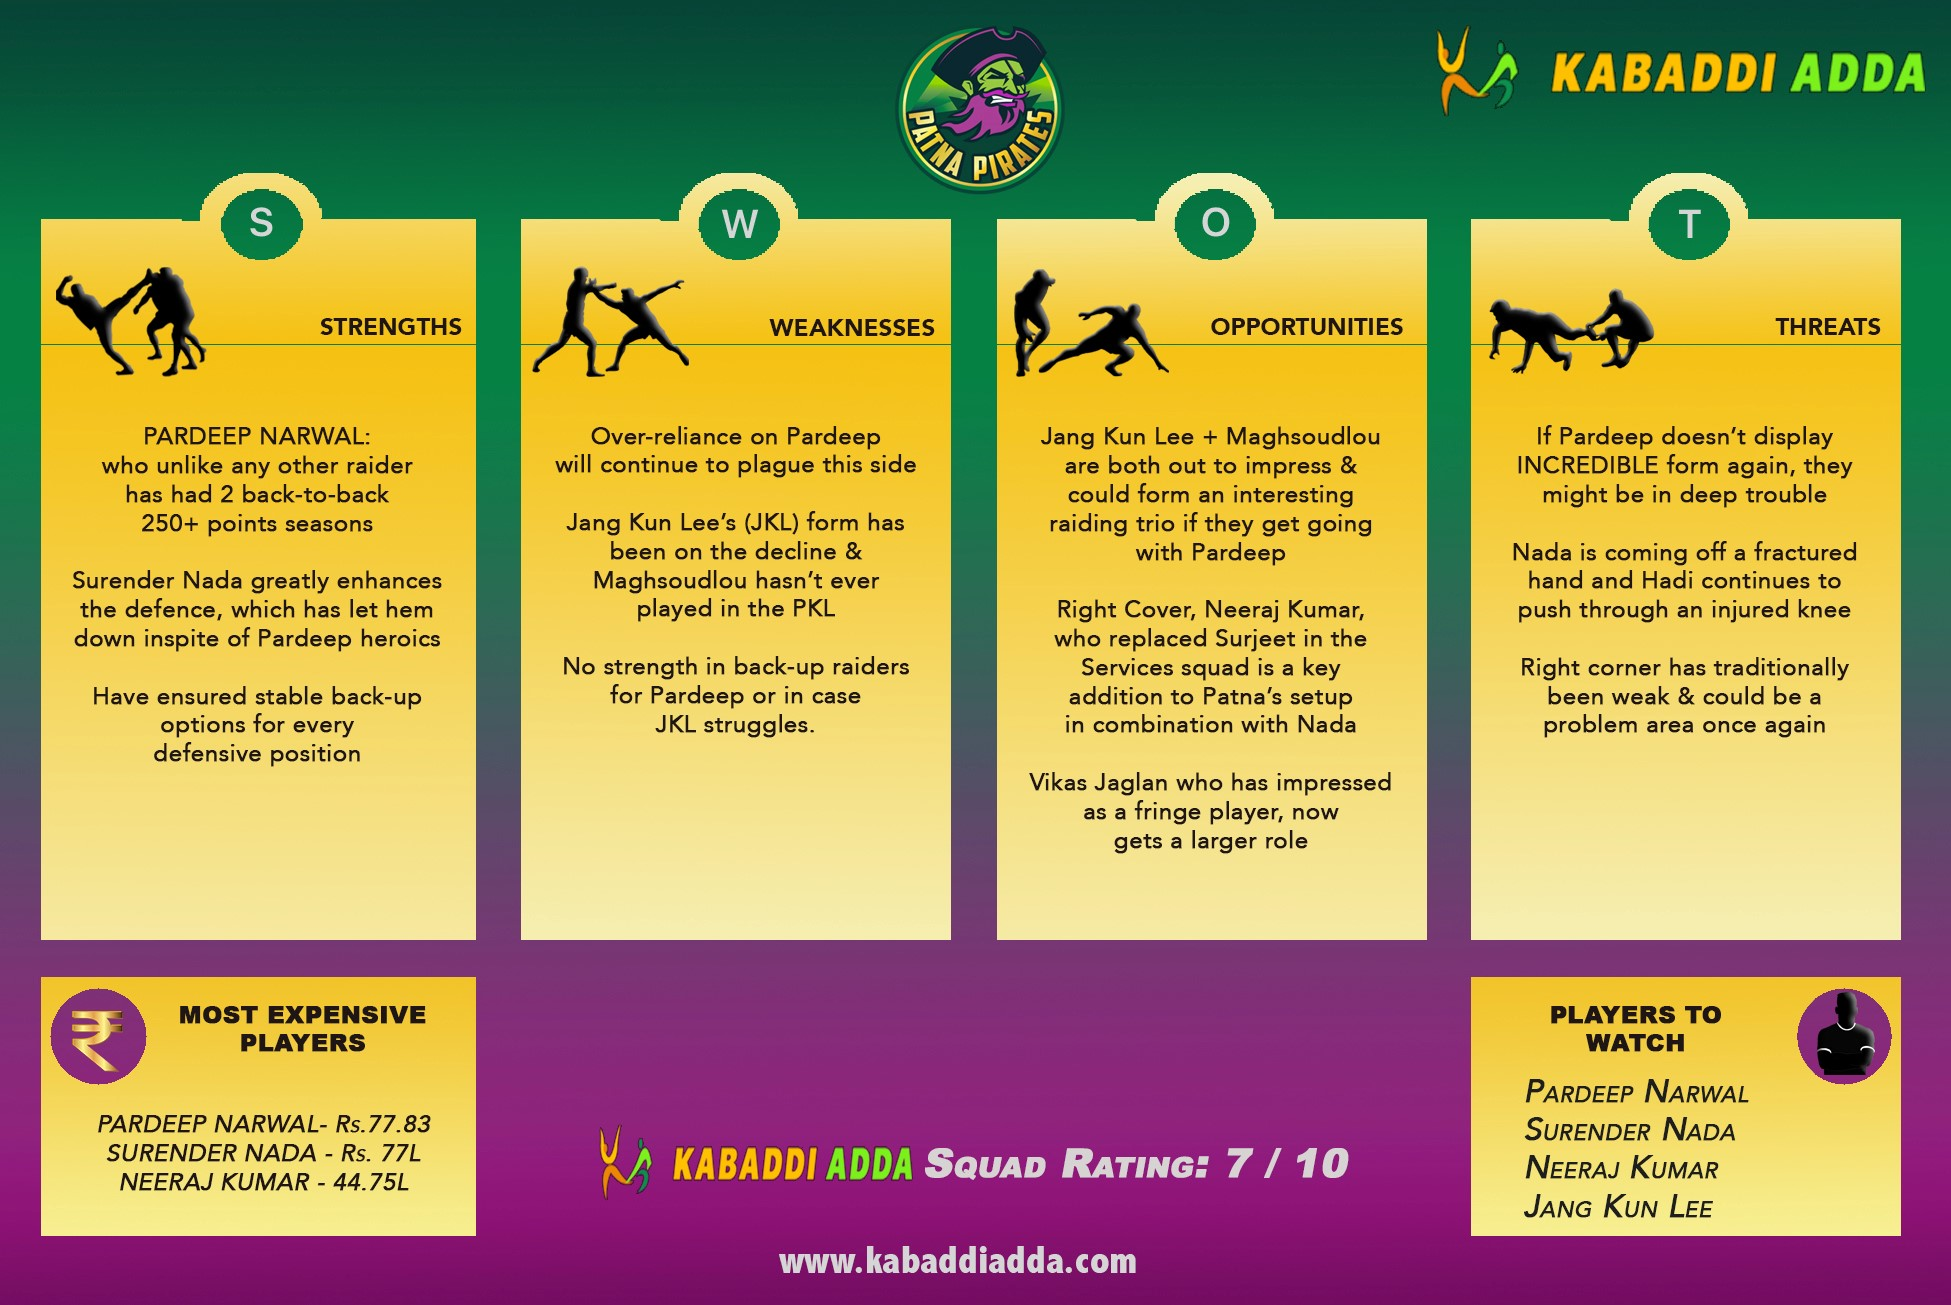 Patna Pirates Pro Kabaddi Season 7 Auction Live